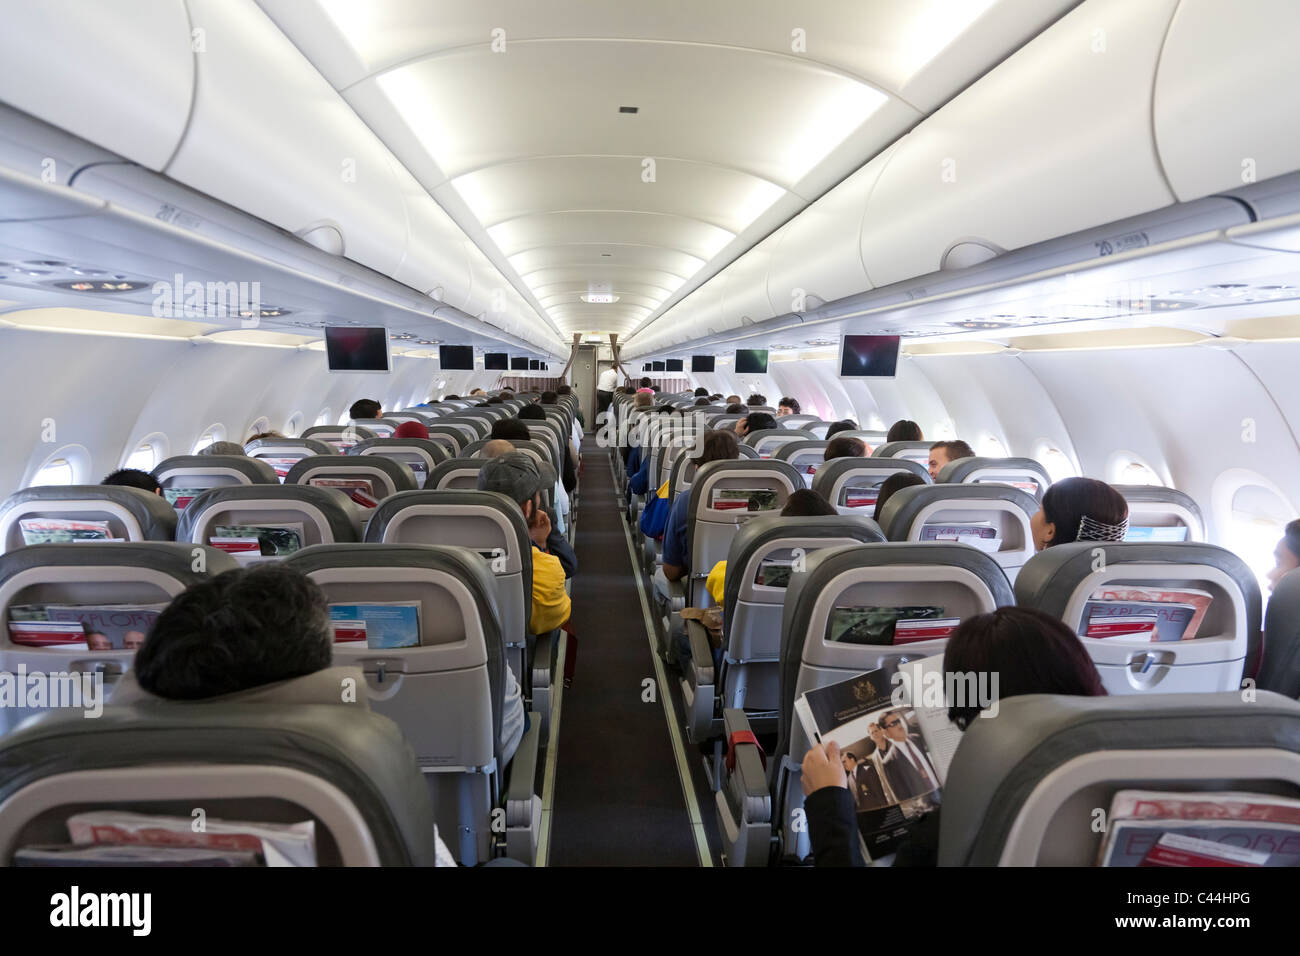 Safety Instructions on monitors before take off inside an airplane. TACA Airline - Stock Image